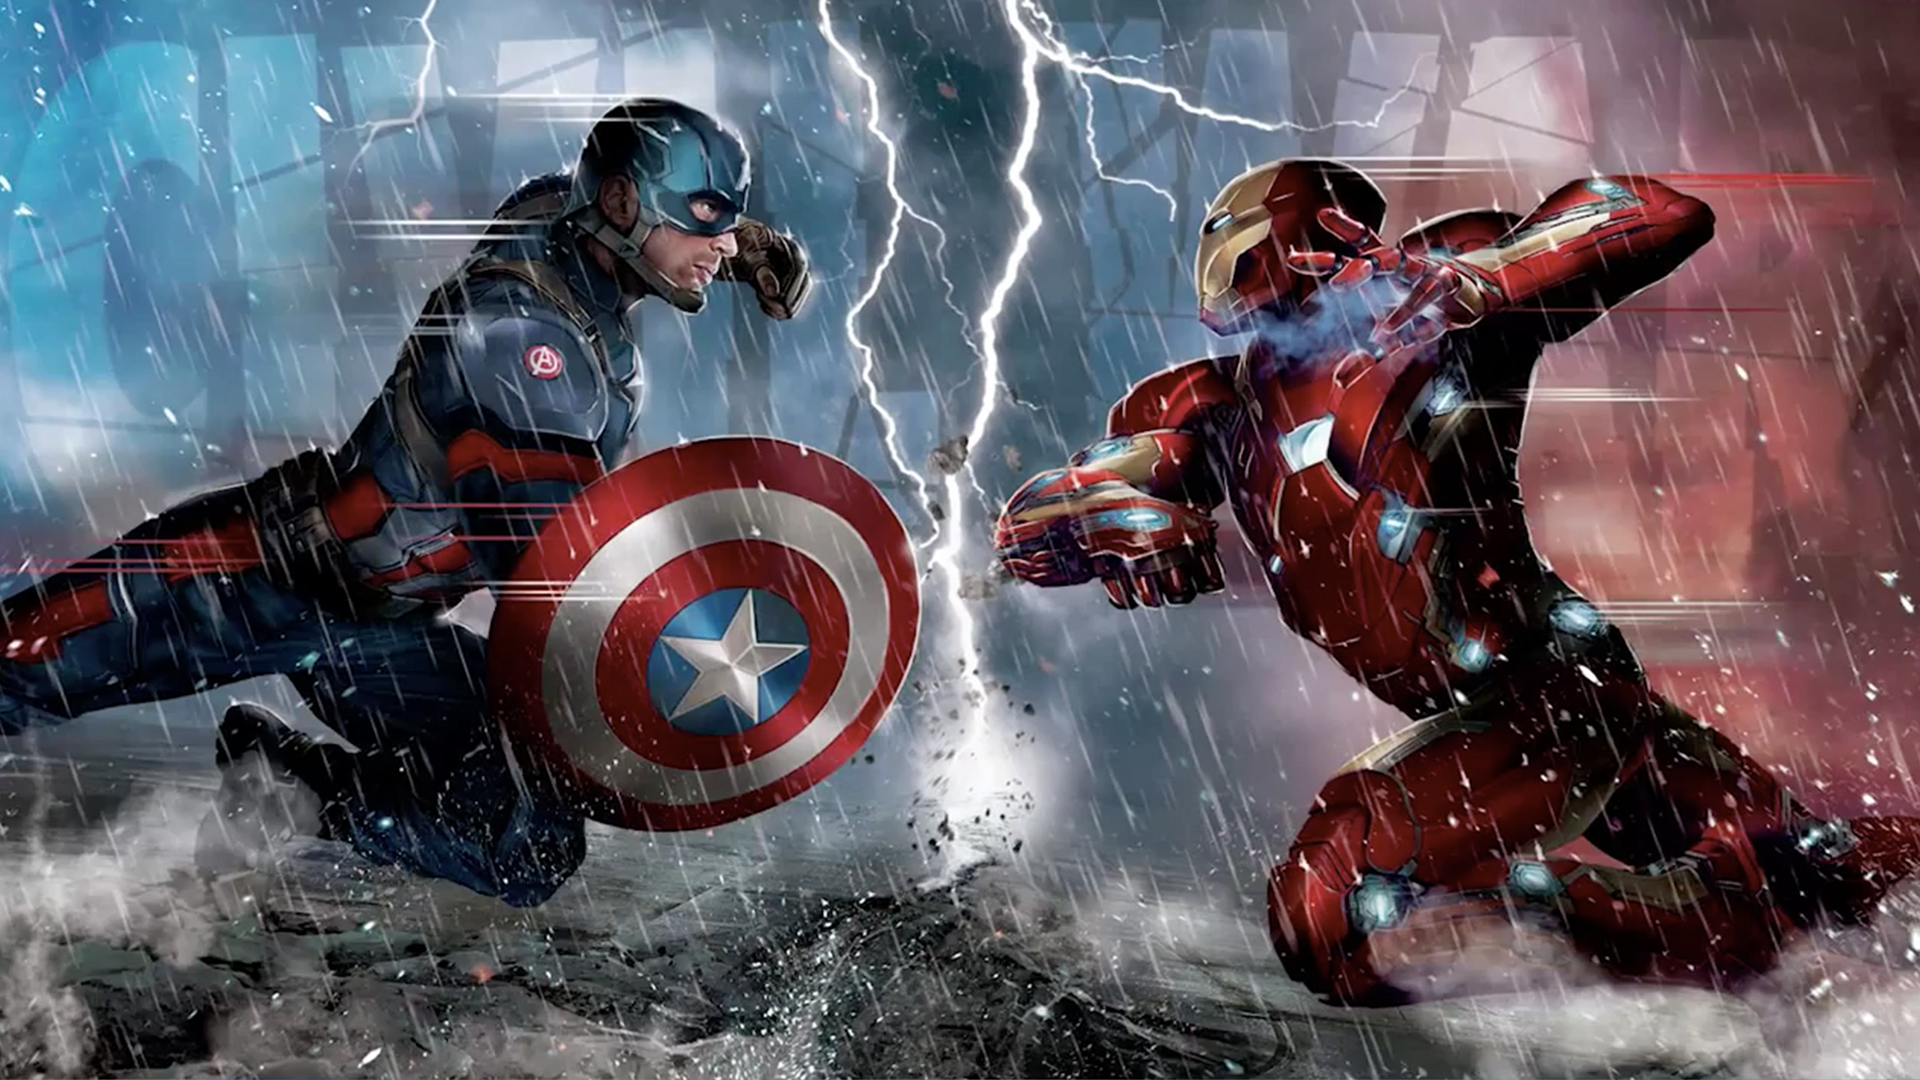 Captain America: Civil War wallpapers High Resolution and